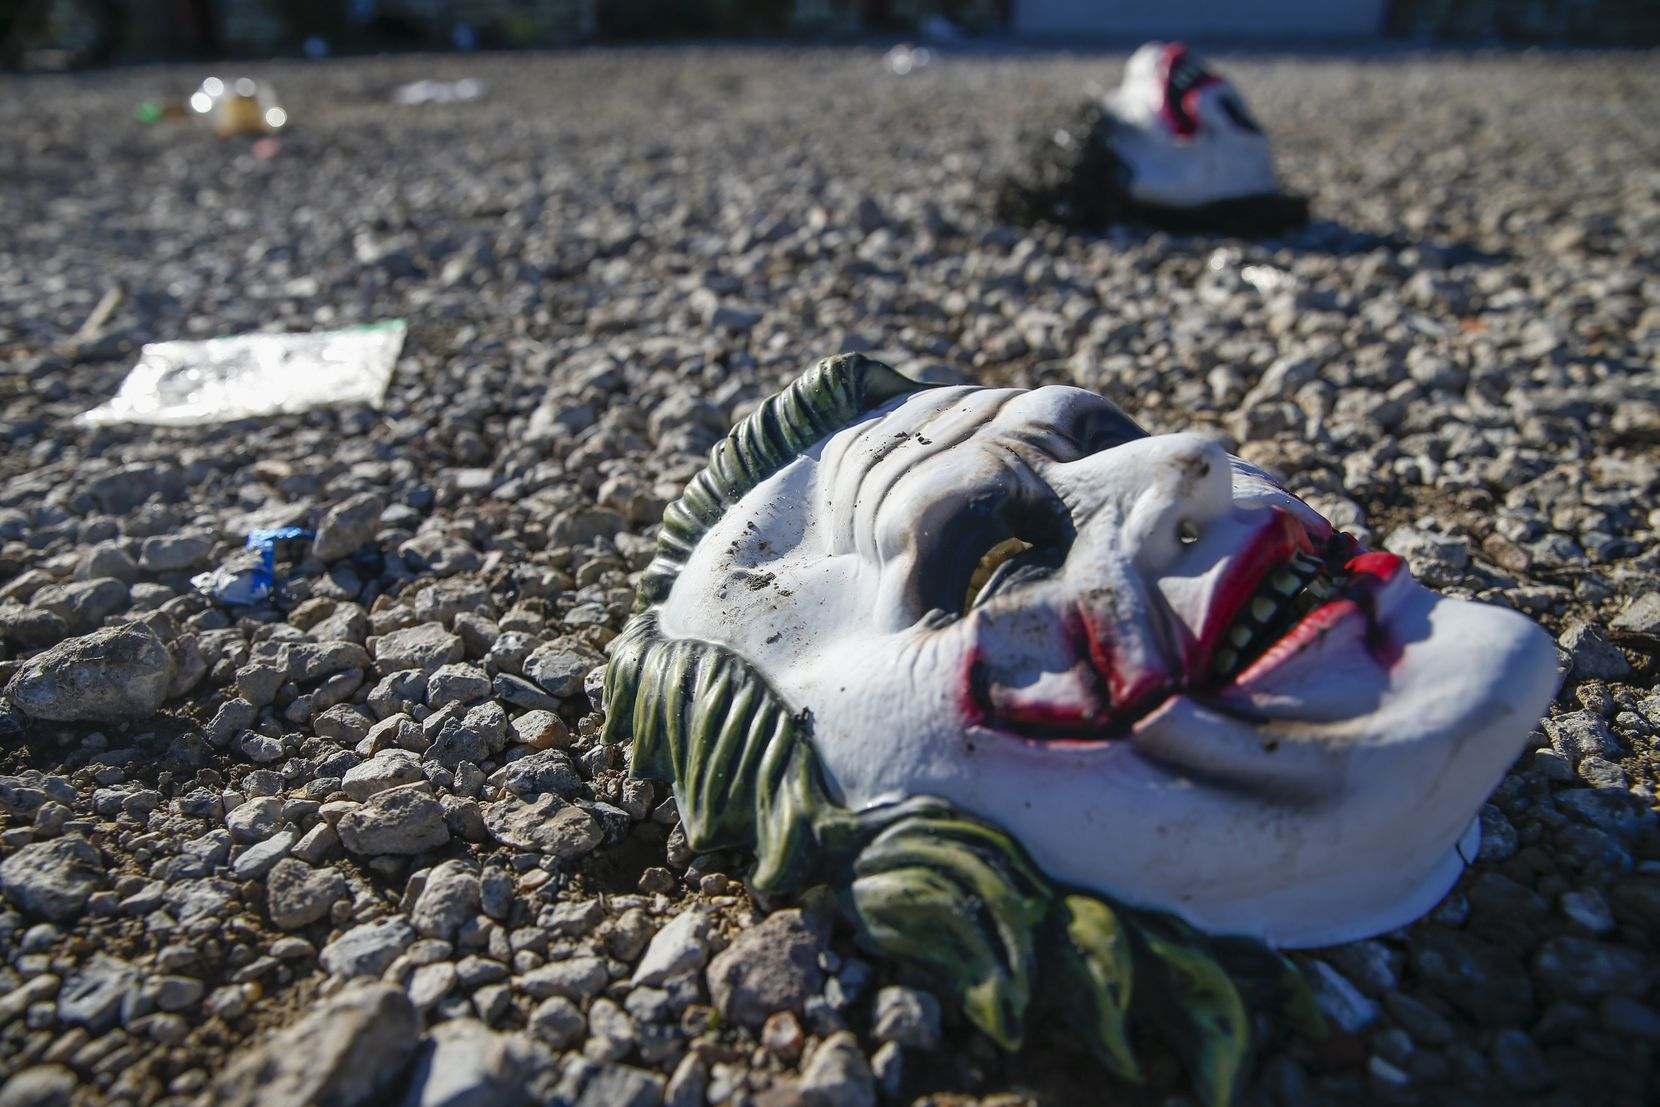 Halloween masks littered the ground outside The Party Venue the morning after a mass shooting near Greenville.